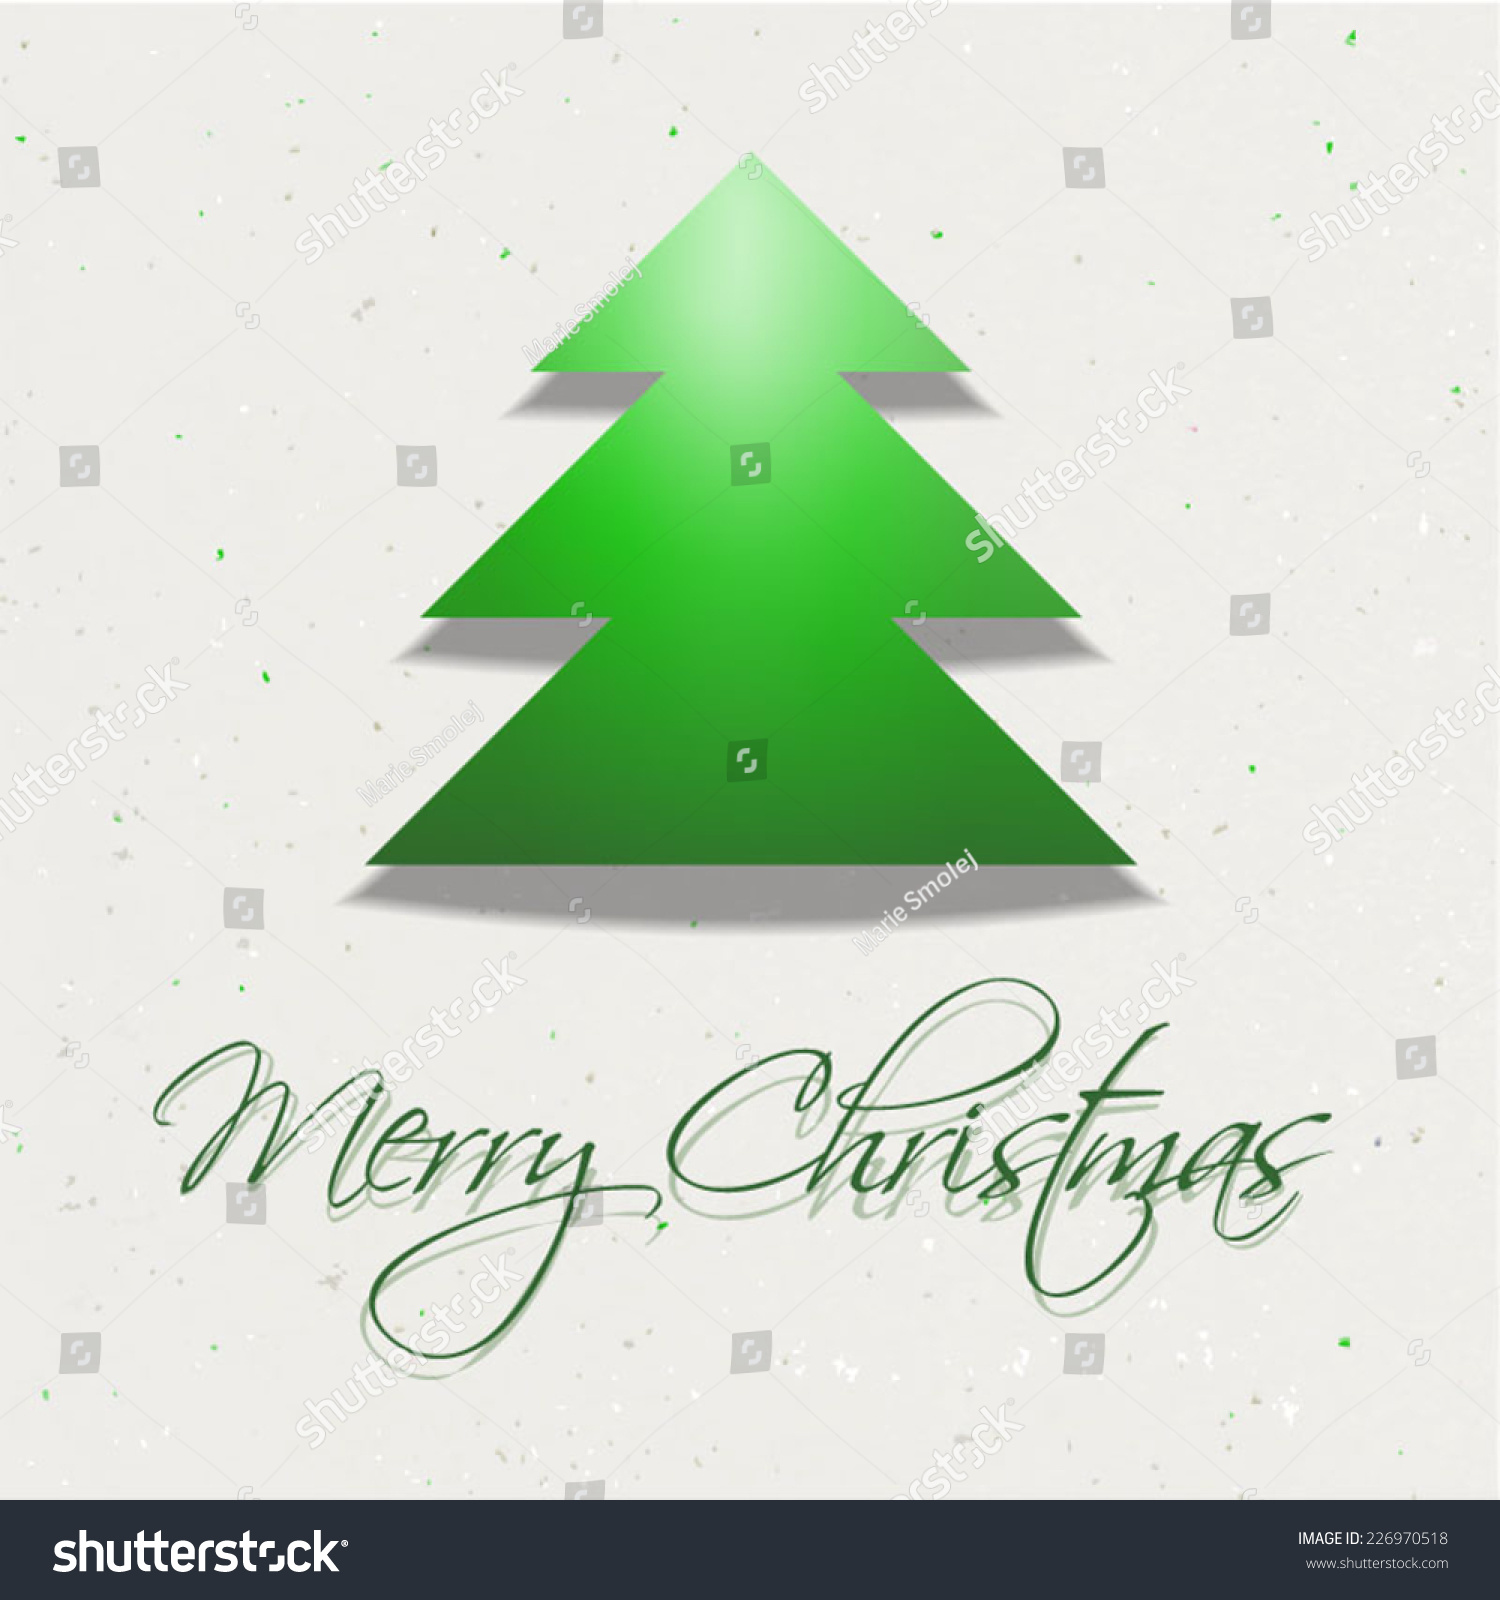 Vector modern christmas card tree merry stock vector royalty free vector modern christmas card with tree merry christmas wishes on recycled paper use for m4hsunfo